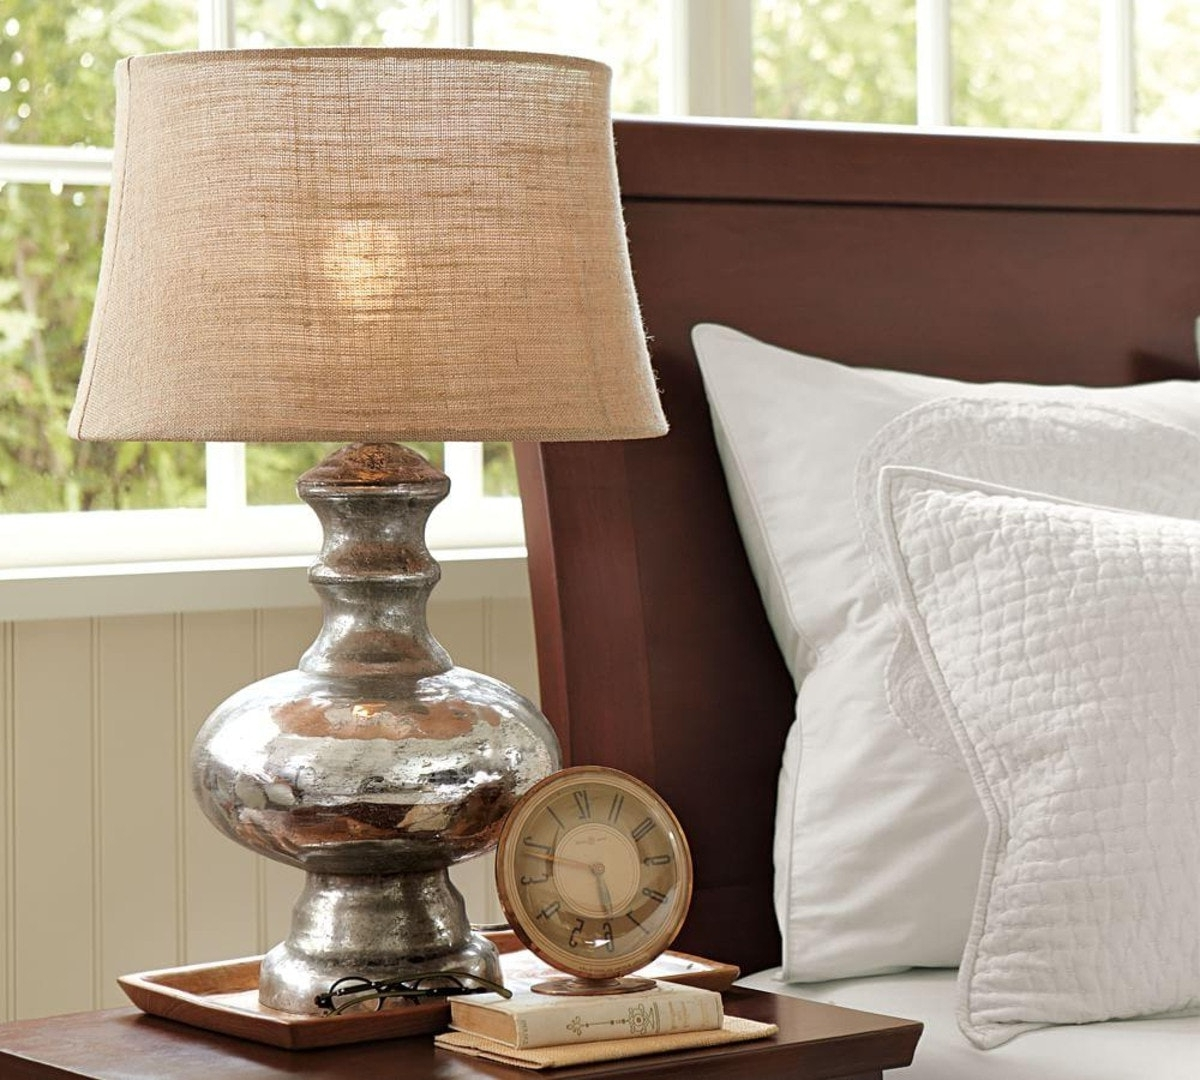 Laura Ashley Table Lamps For Living Room For Trendy Table Lamps The Home Depot Picture With Amusing Glass Large Blue (View 6 of 15)